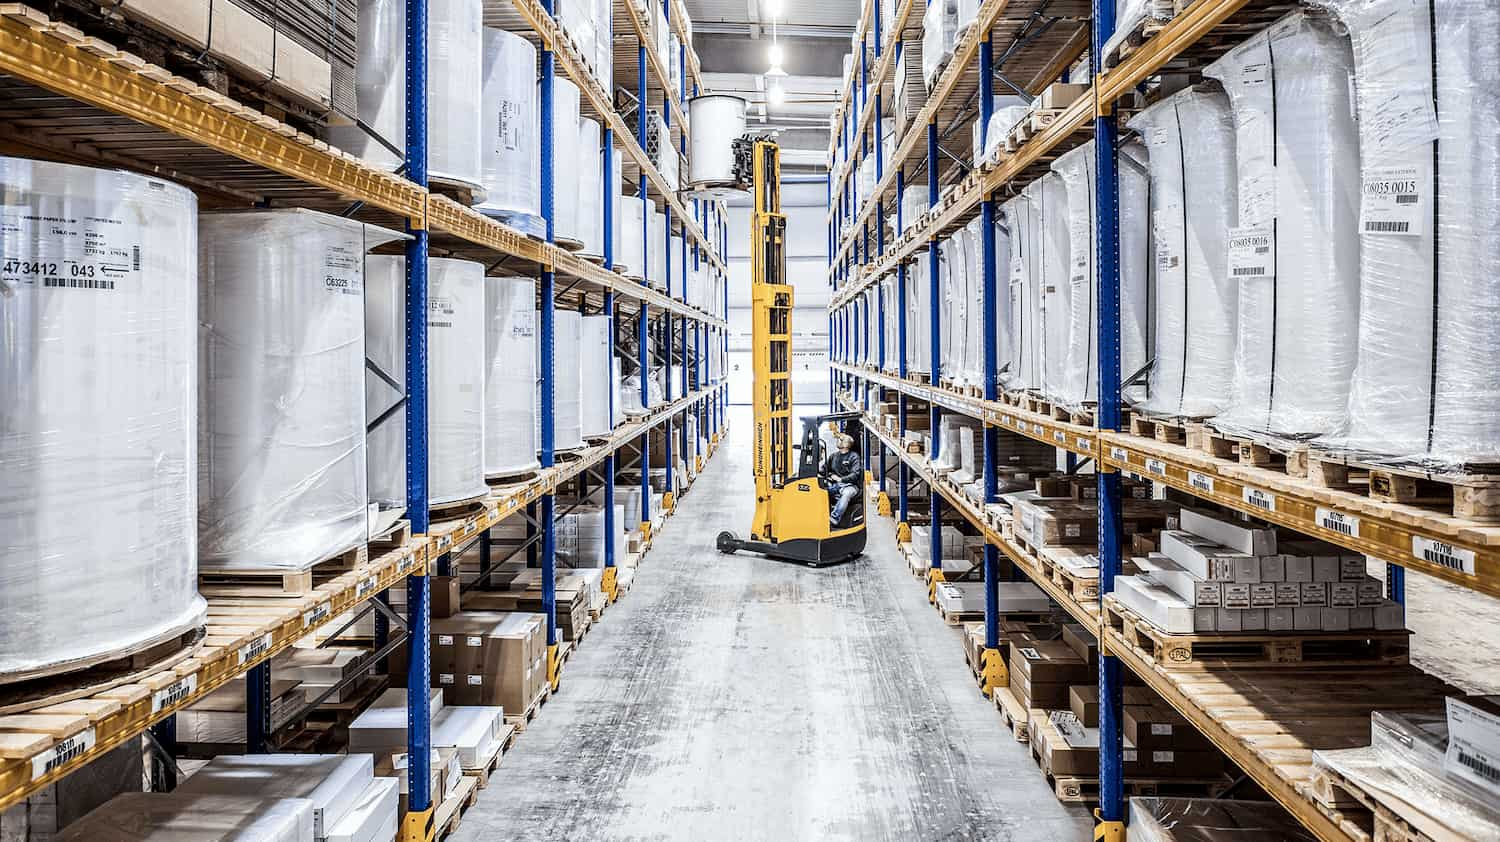 Picture from the warehouse in Siebenlehn